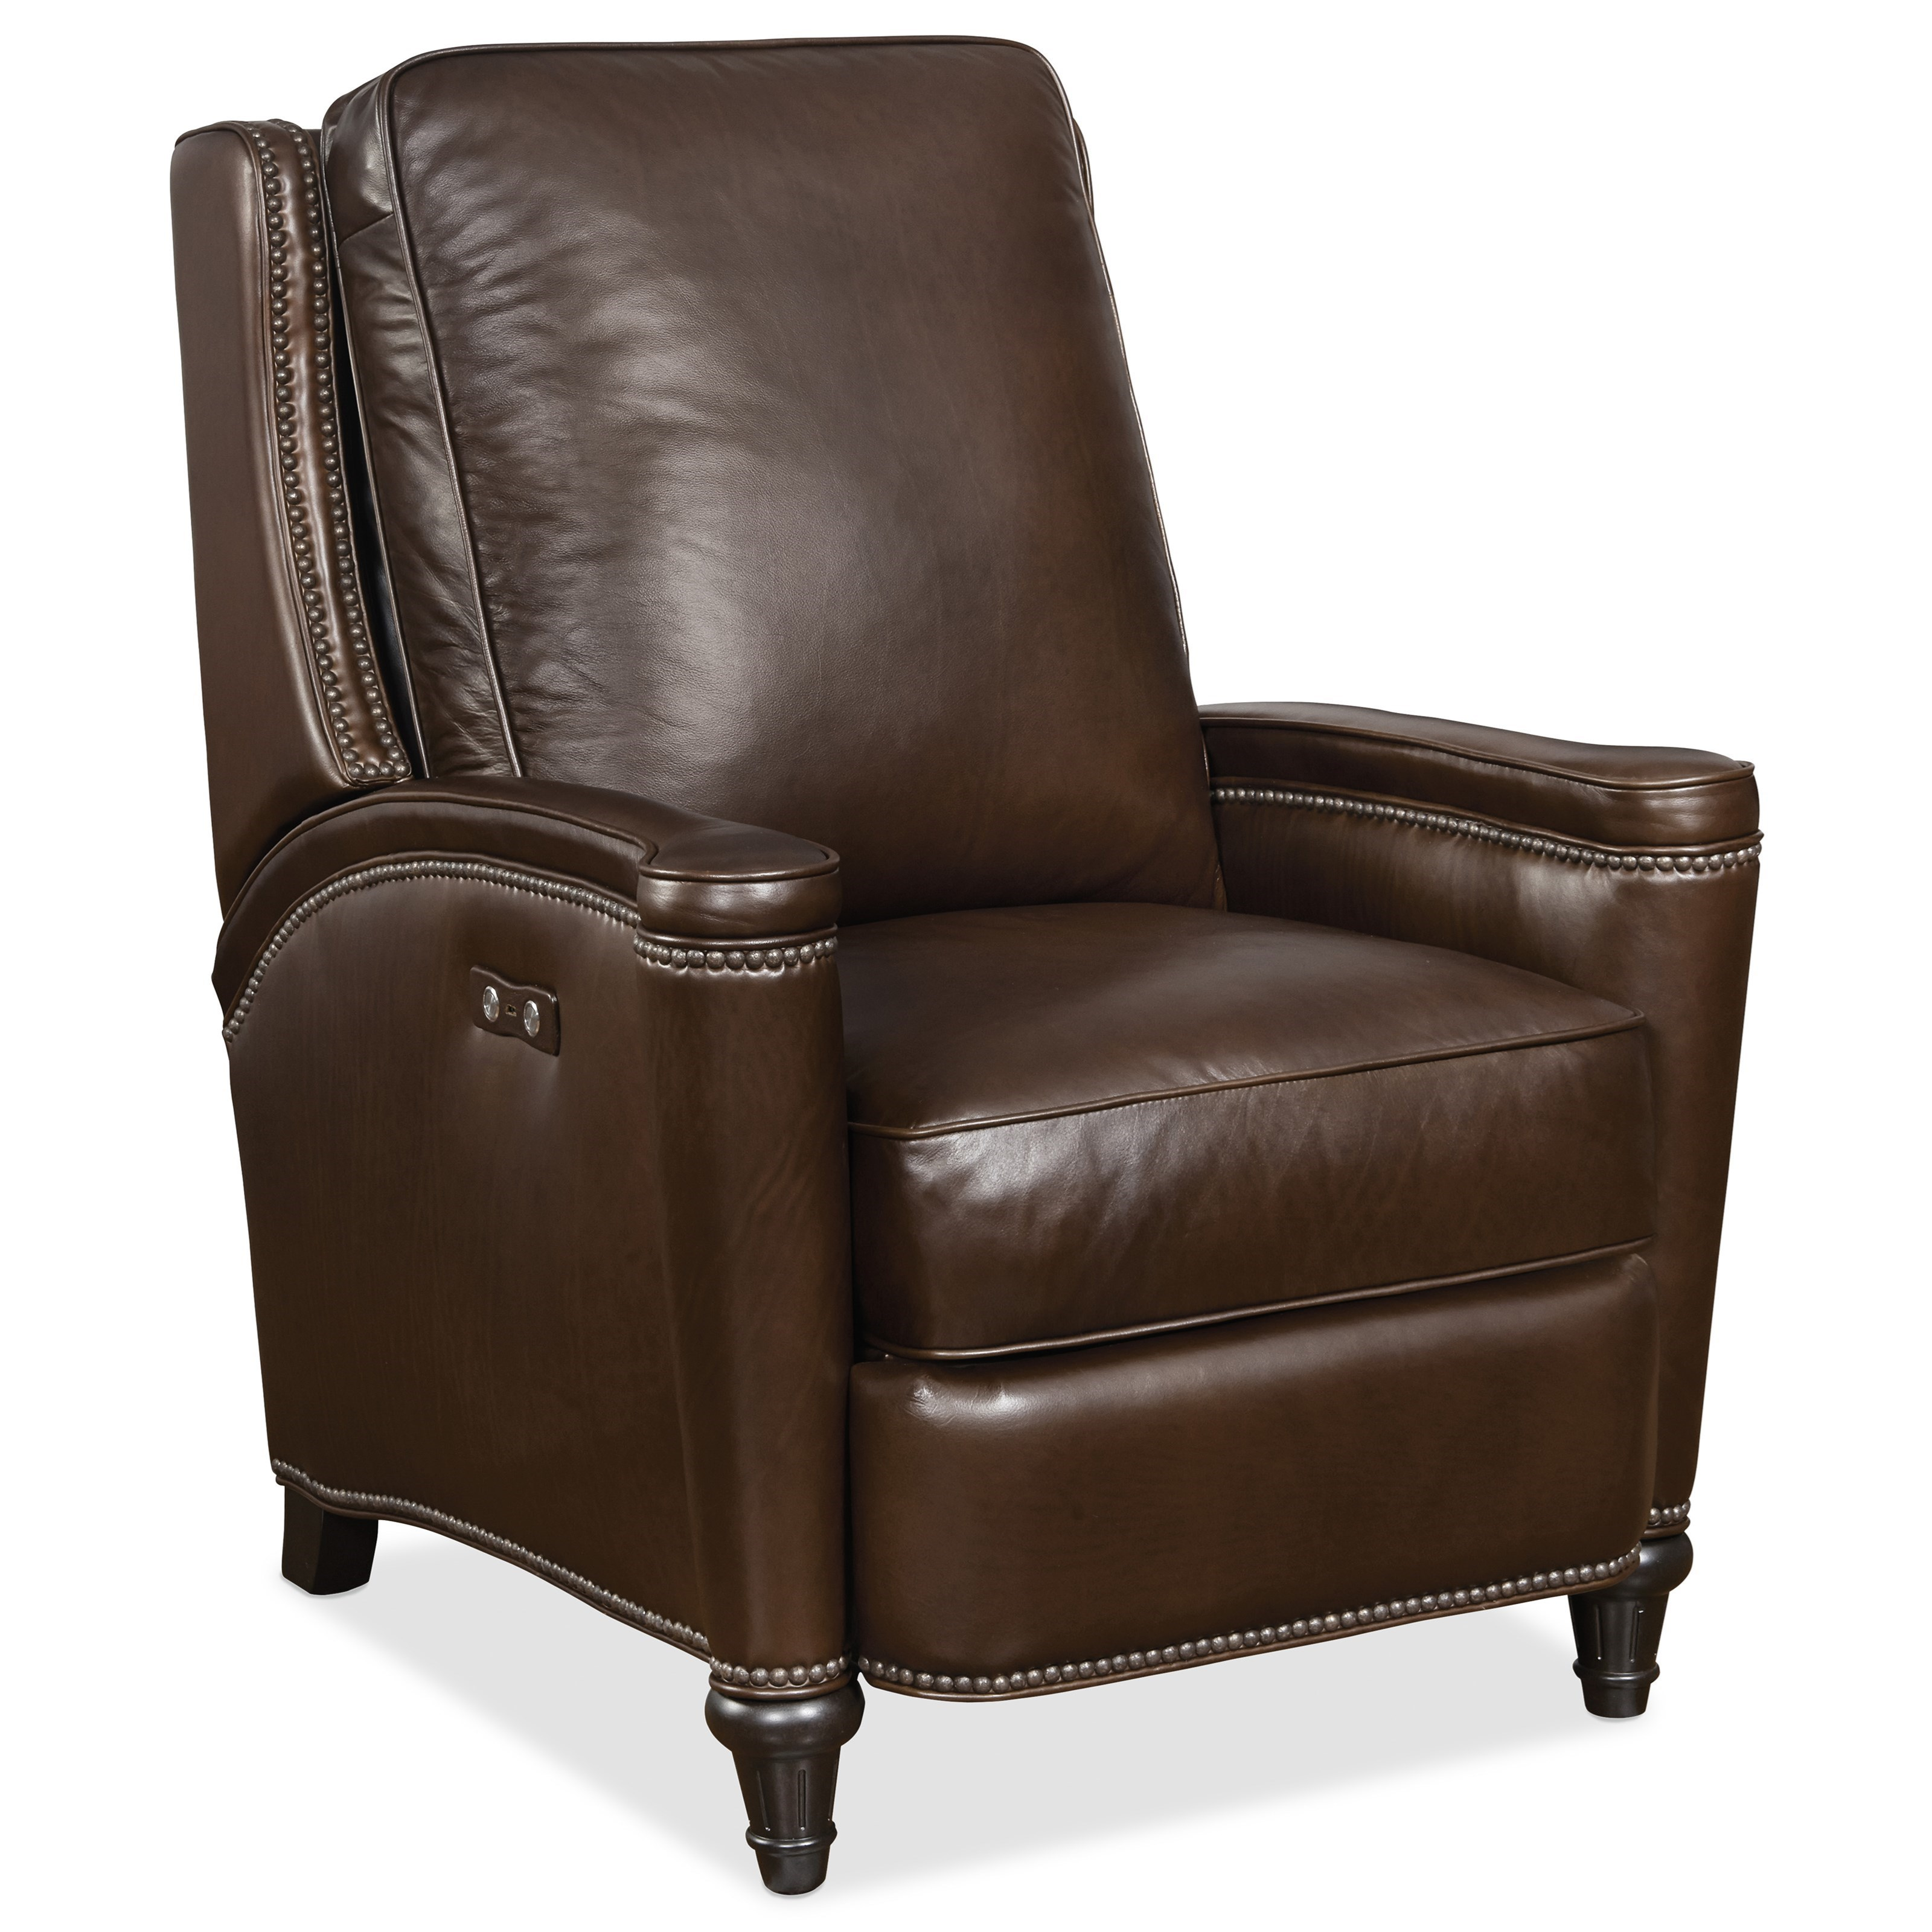 Reclining Chairs Rylea Power Recliner by Hooker Furniture at Baer's Furniture